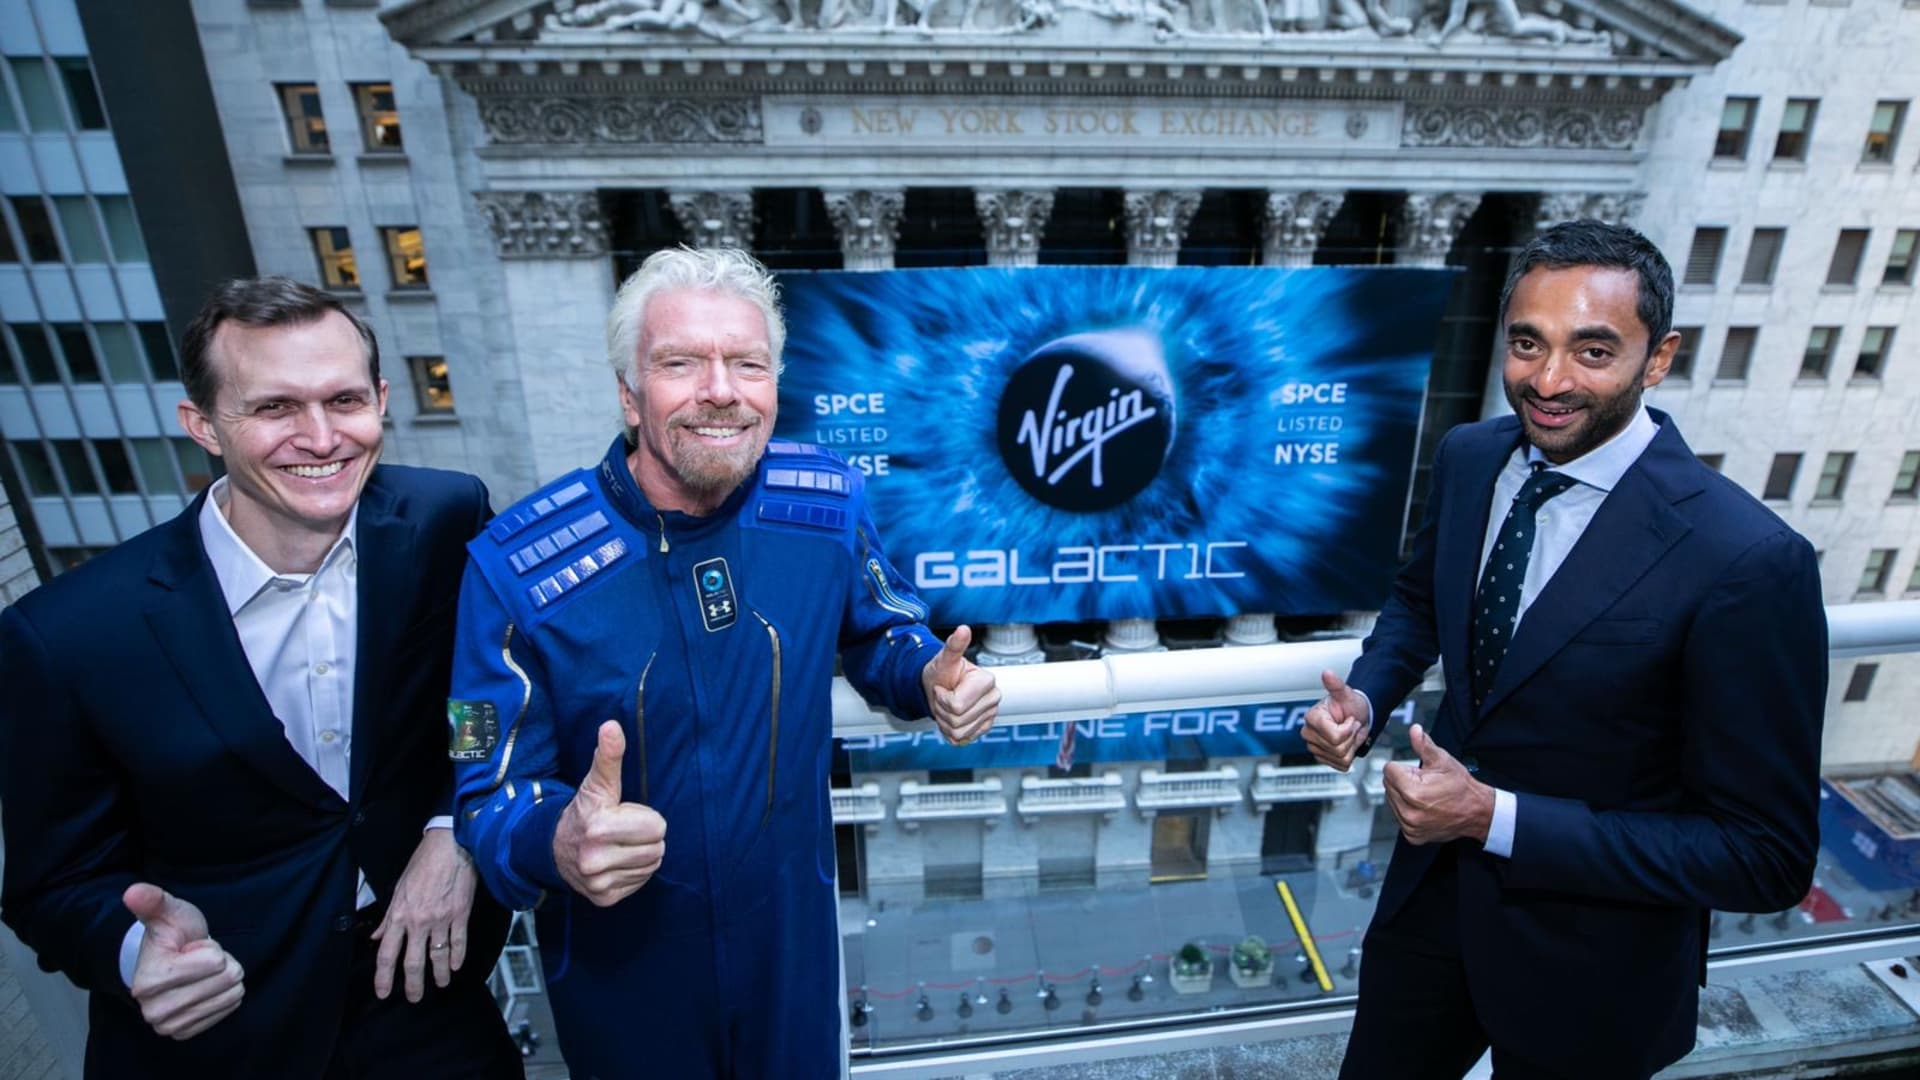 Virgin Galactic leaders in front of the New York Stock Exchange, from left: CEO George Whitesides, founder Richard Branson and Chairman Chamath Palihapitiya.